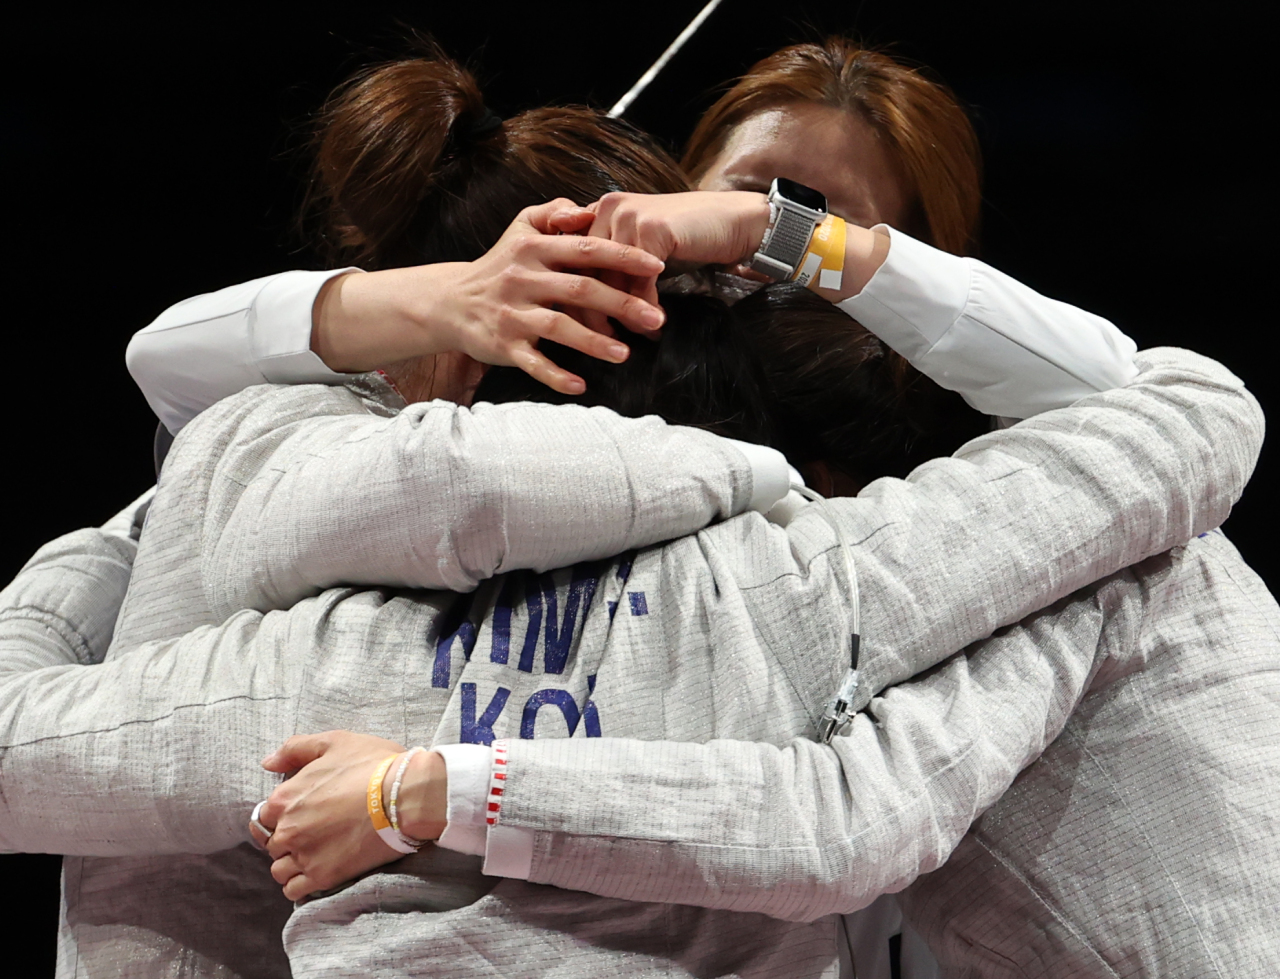 South Korean fencers Kim Ji-yeon, Yoon Ji-su, Choi Soo-yeon and Seo Ji-yeon celebrate their victory over Italy in the bronze medal match of the women's sabre team fencing event at the Tokyo Olympics at Makuhari Messe Hall B in Chiba, Japan, on Saturday. (Yonhap)